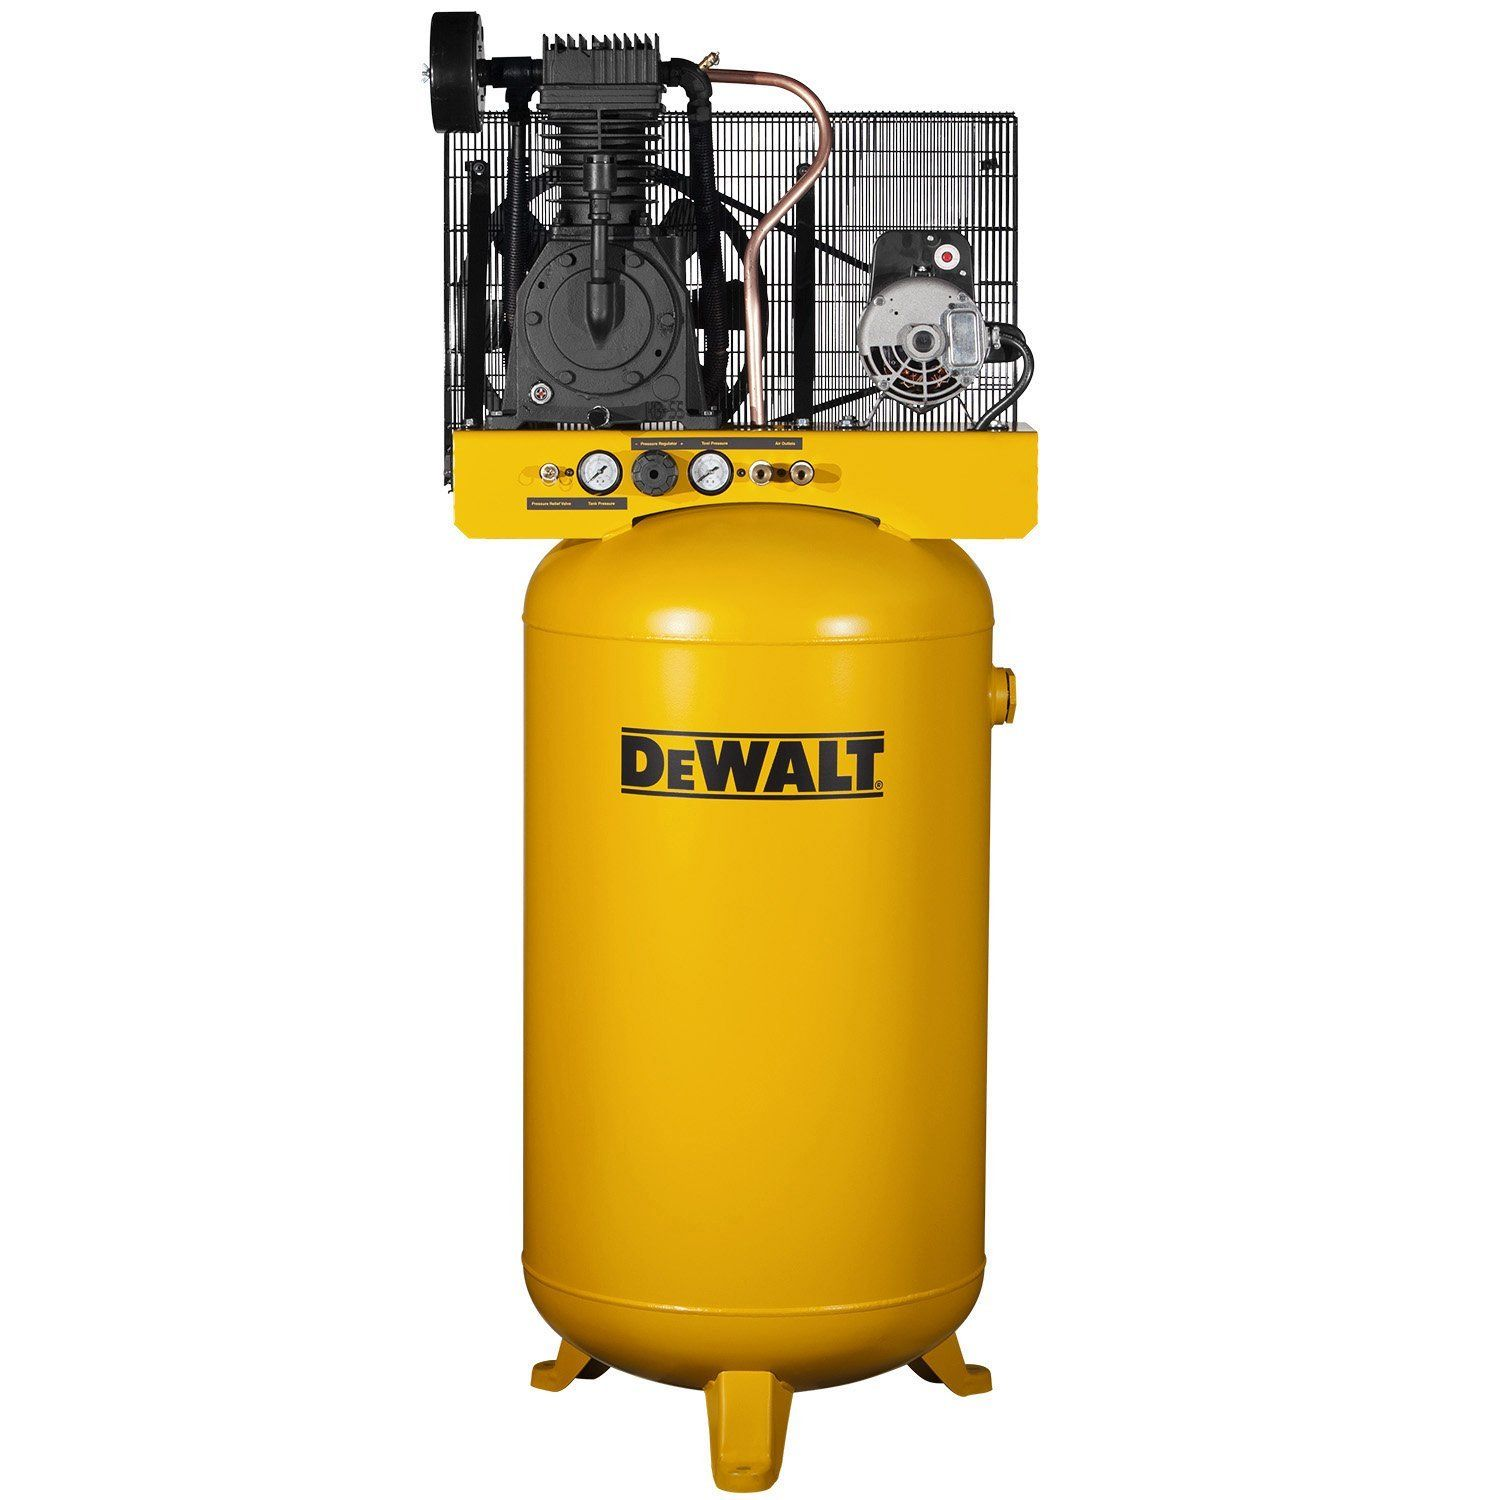 DeWalt stationary air compressor Two stage air